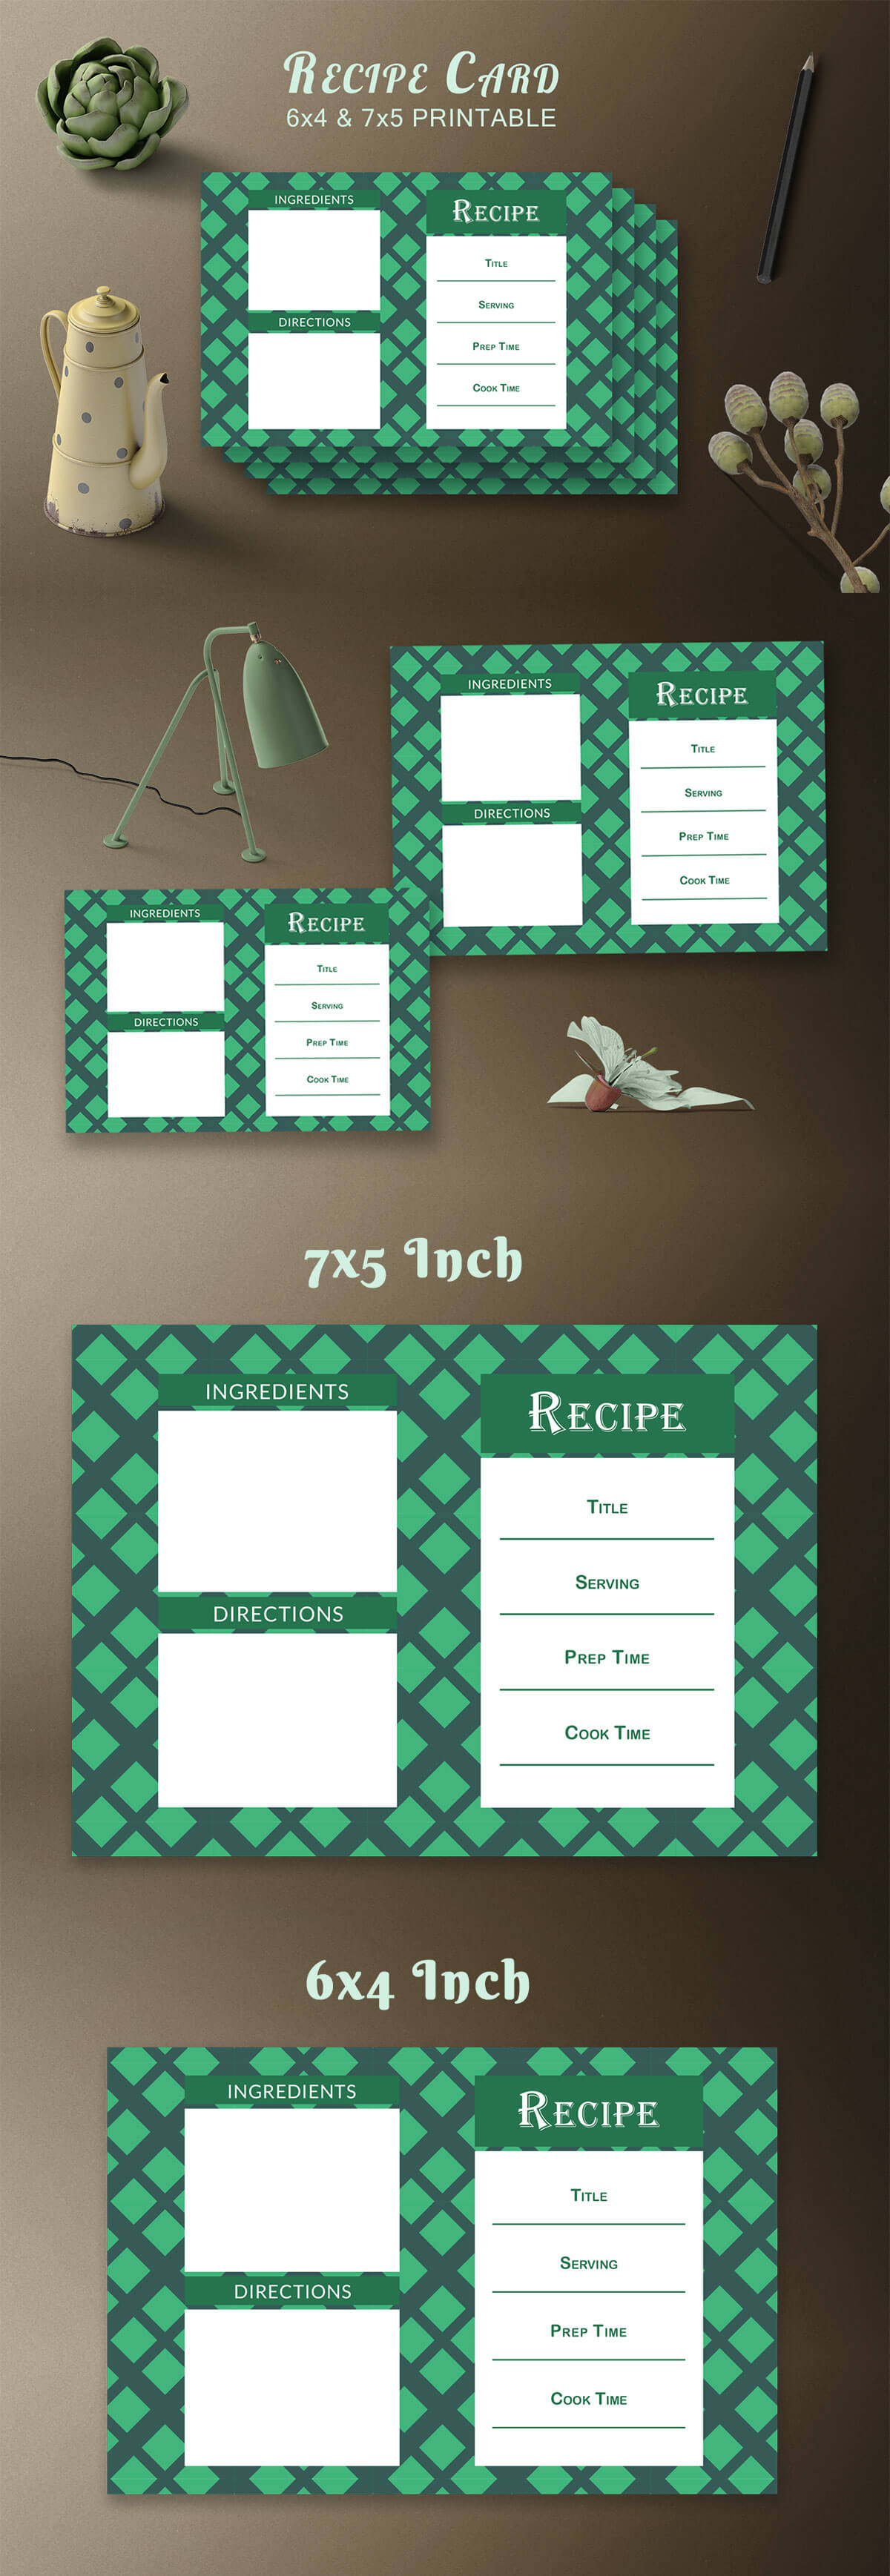 Free Recipe Card Printable Template V19